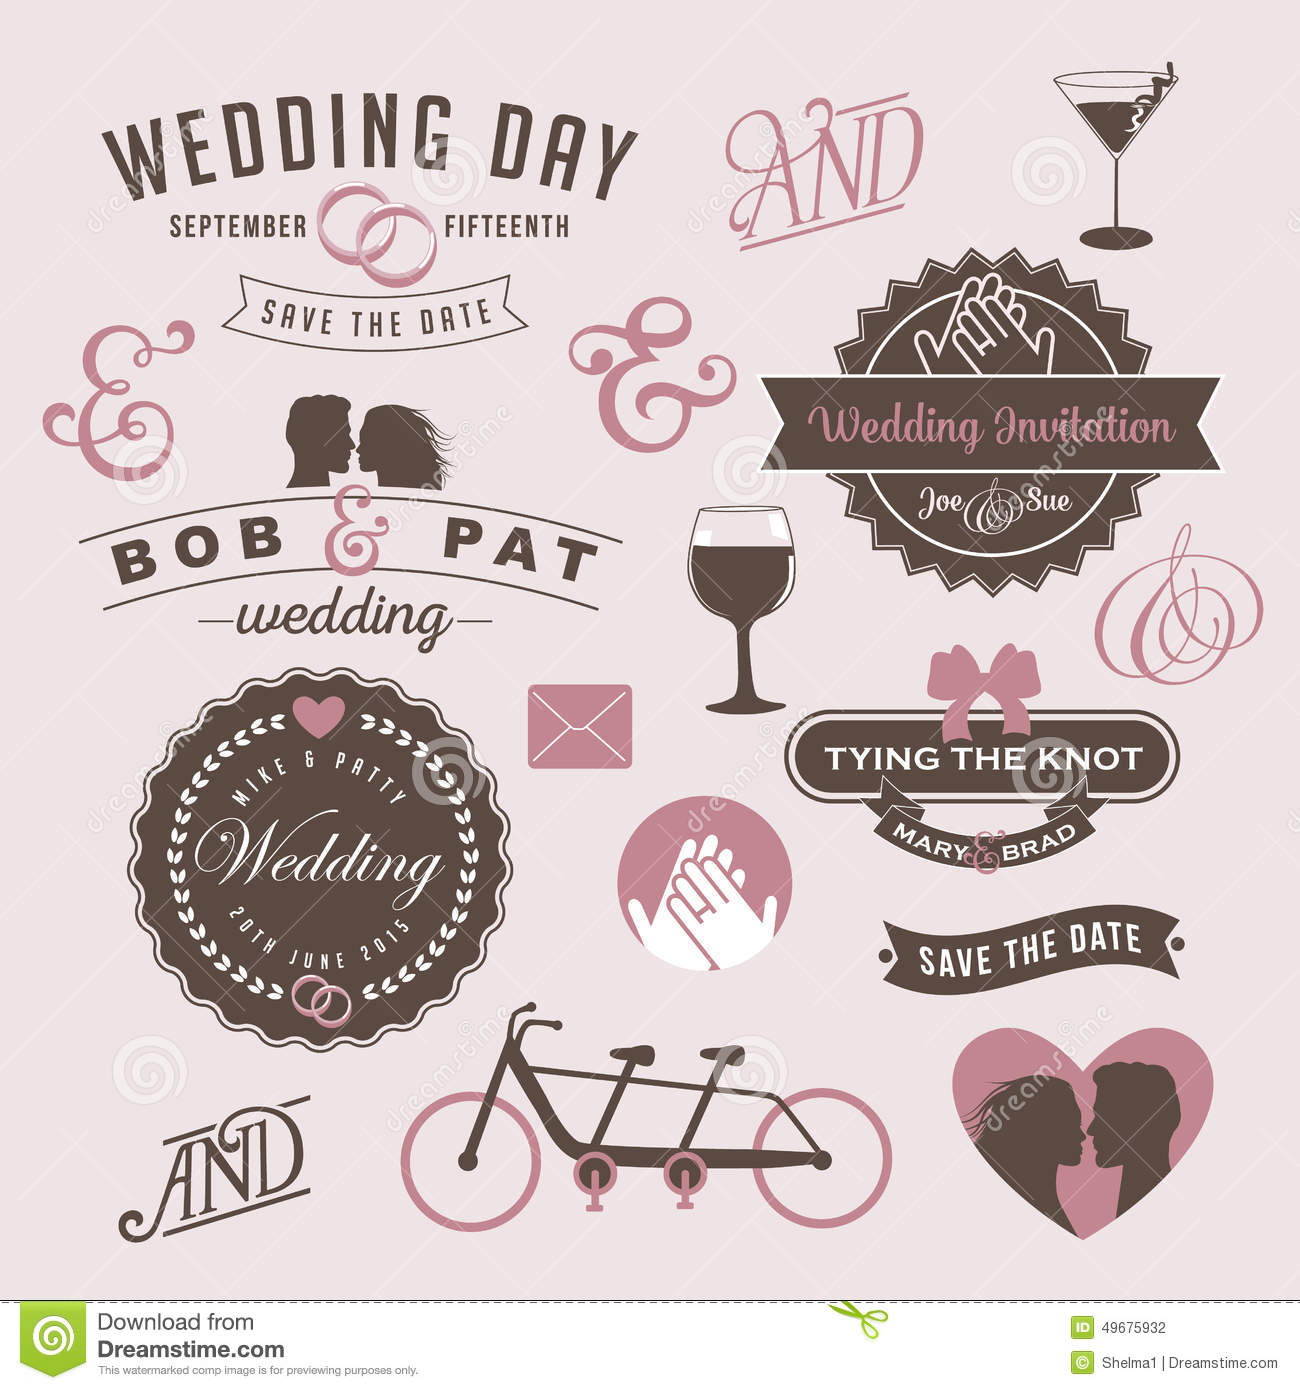 Wedding Graphics: Vintage Wedding Invitation Design Graphic Elements Stock